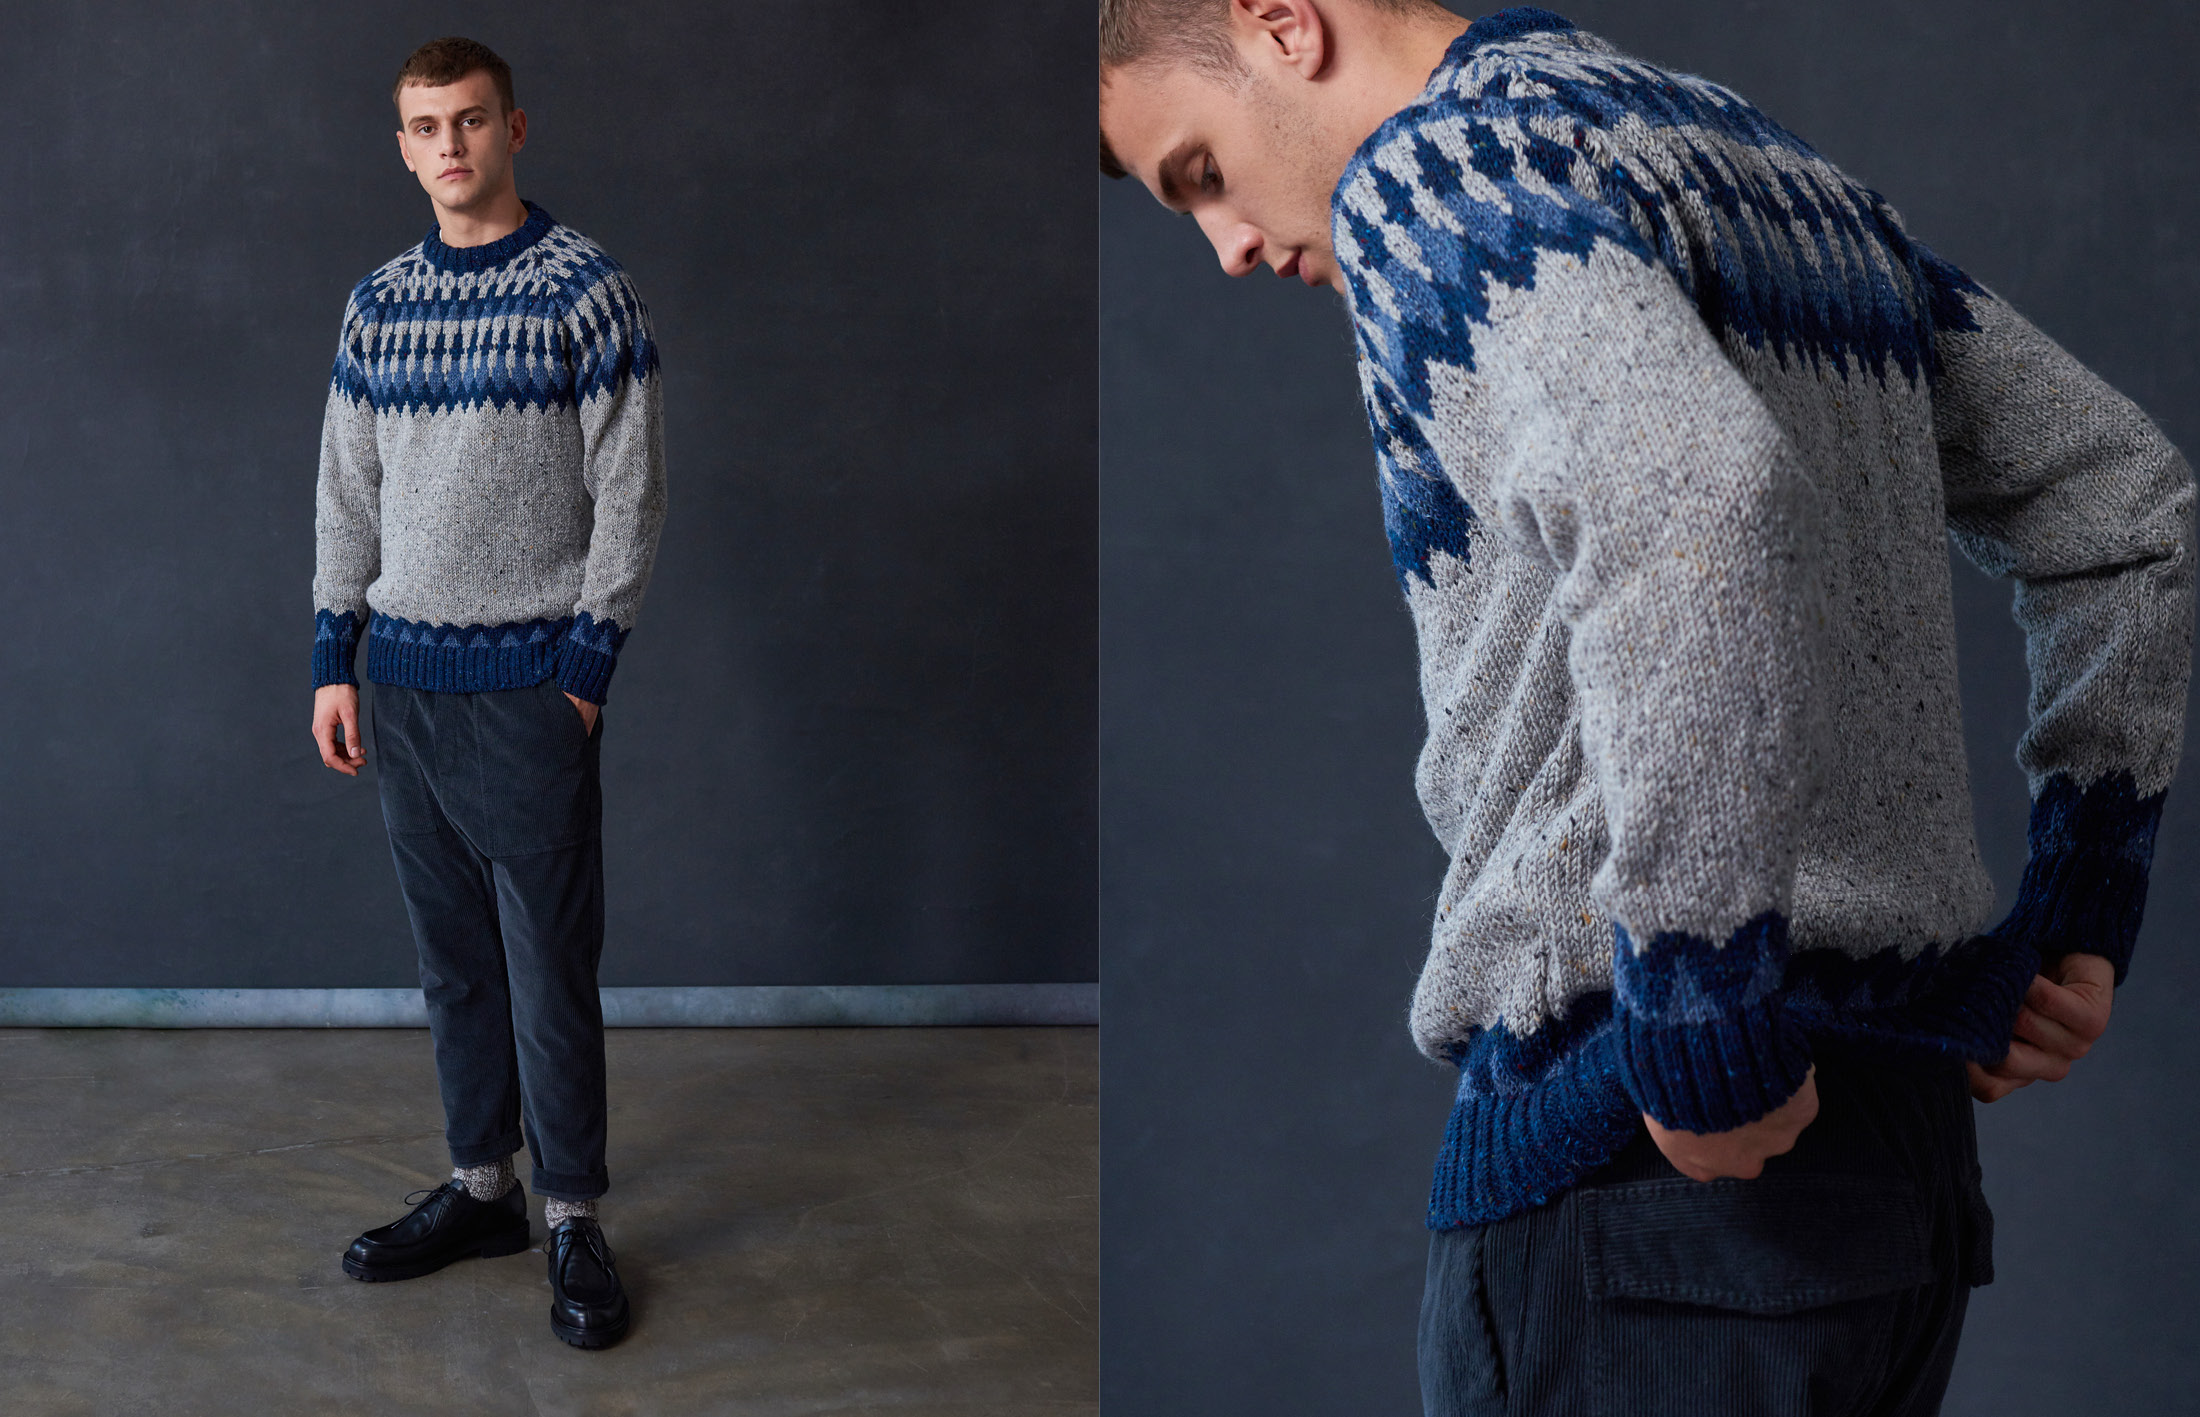 A brief history of the Fair Isle knit